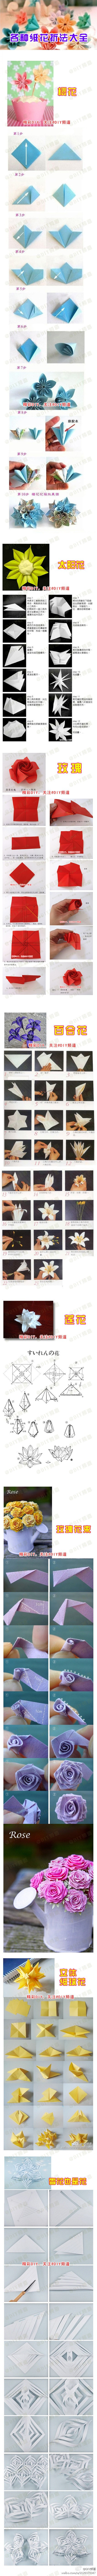 Origami Flowersinstructions Arent In English But At Least There Rose Flower Diagram By